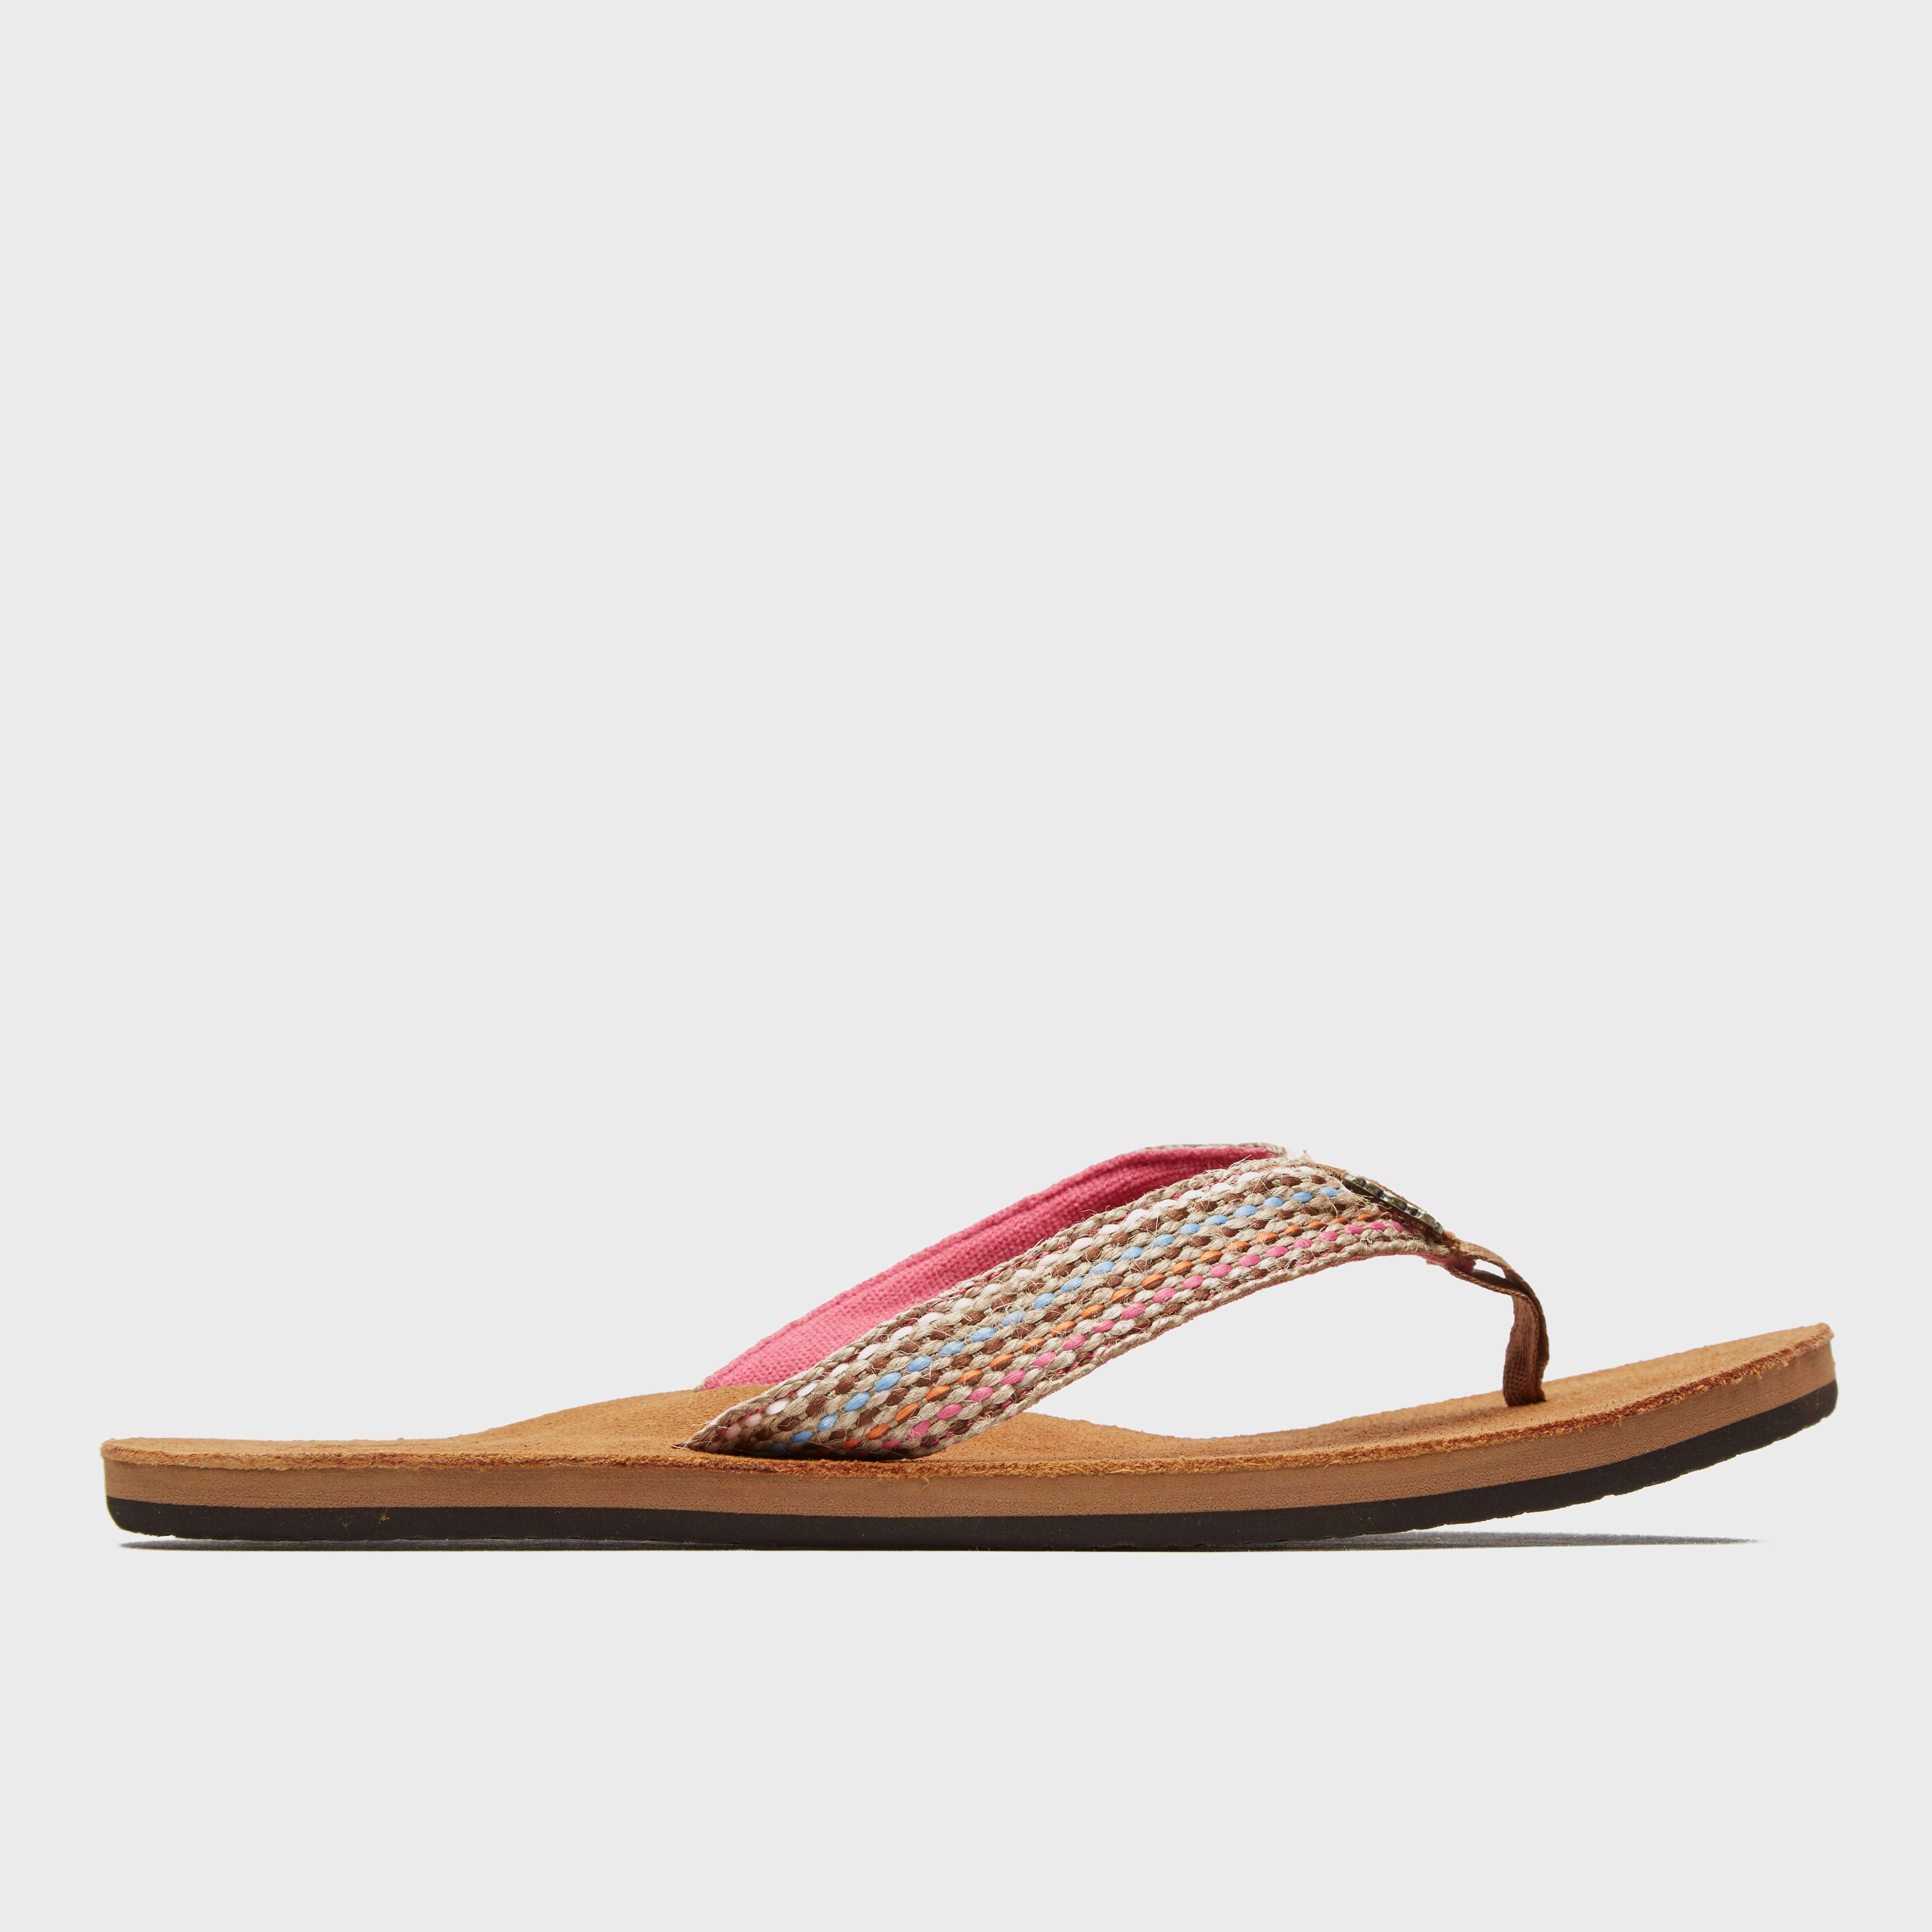 REEF Women's Gypsy Love Flip Flop